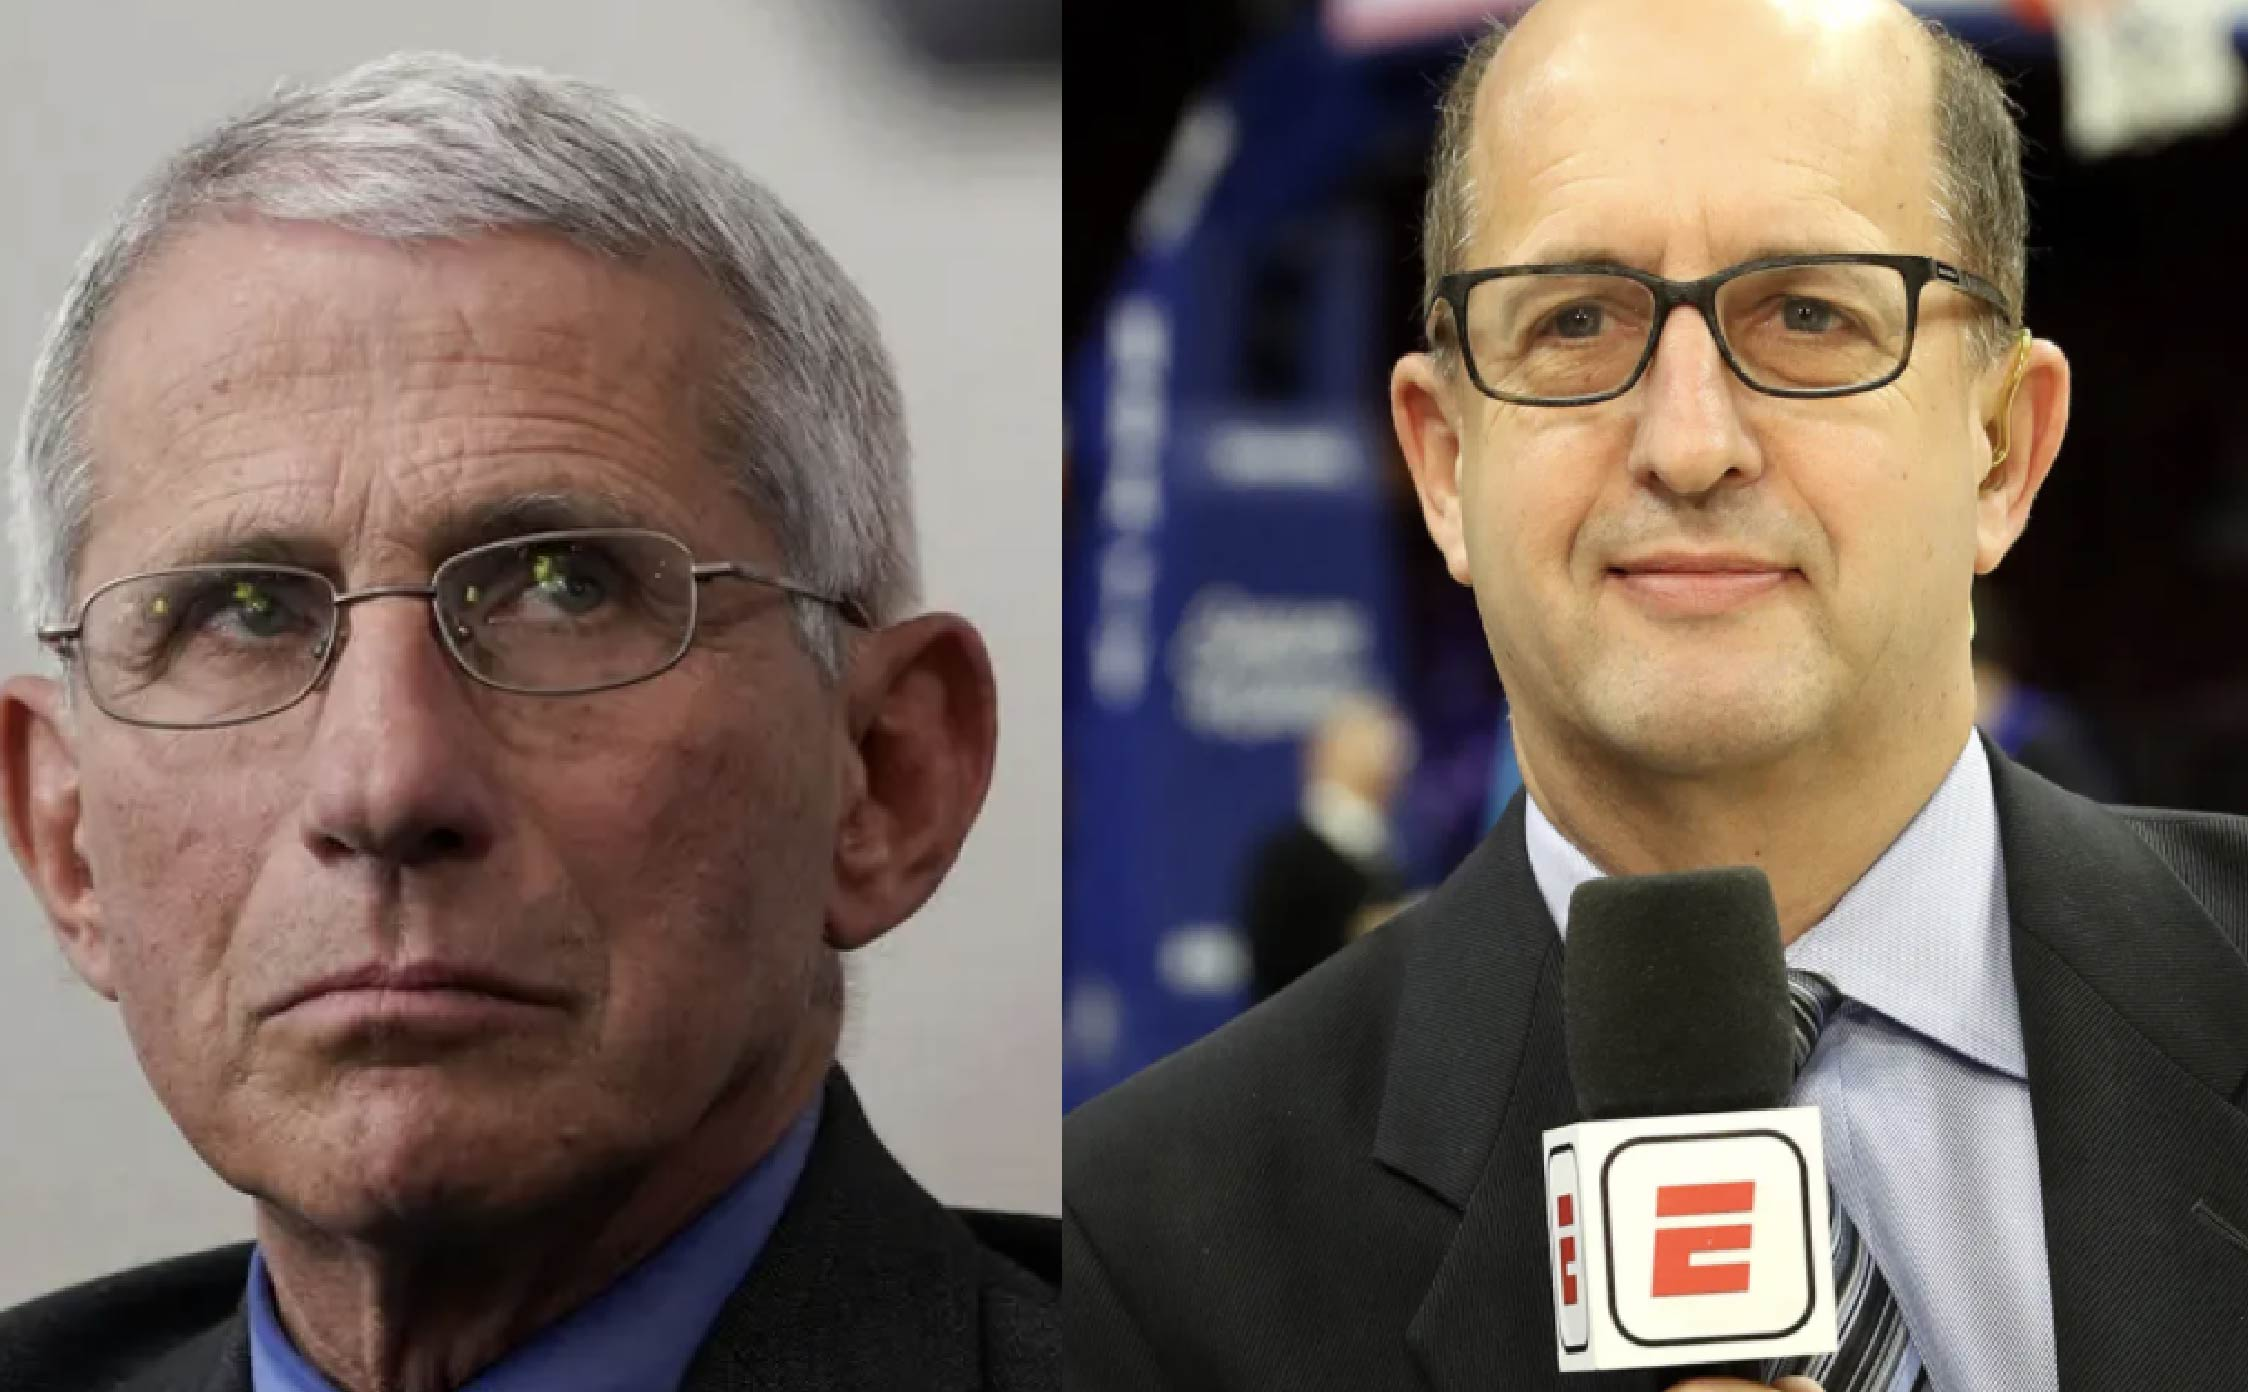 [VIDEO] NBA Finals Announcer Dunks On Dr. Fauci Live on The Air